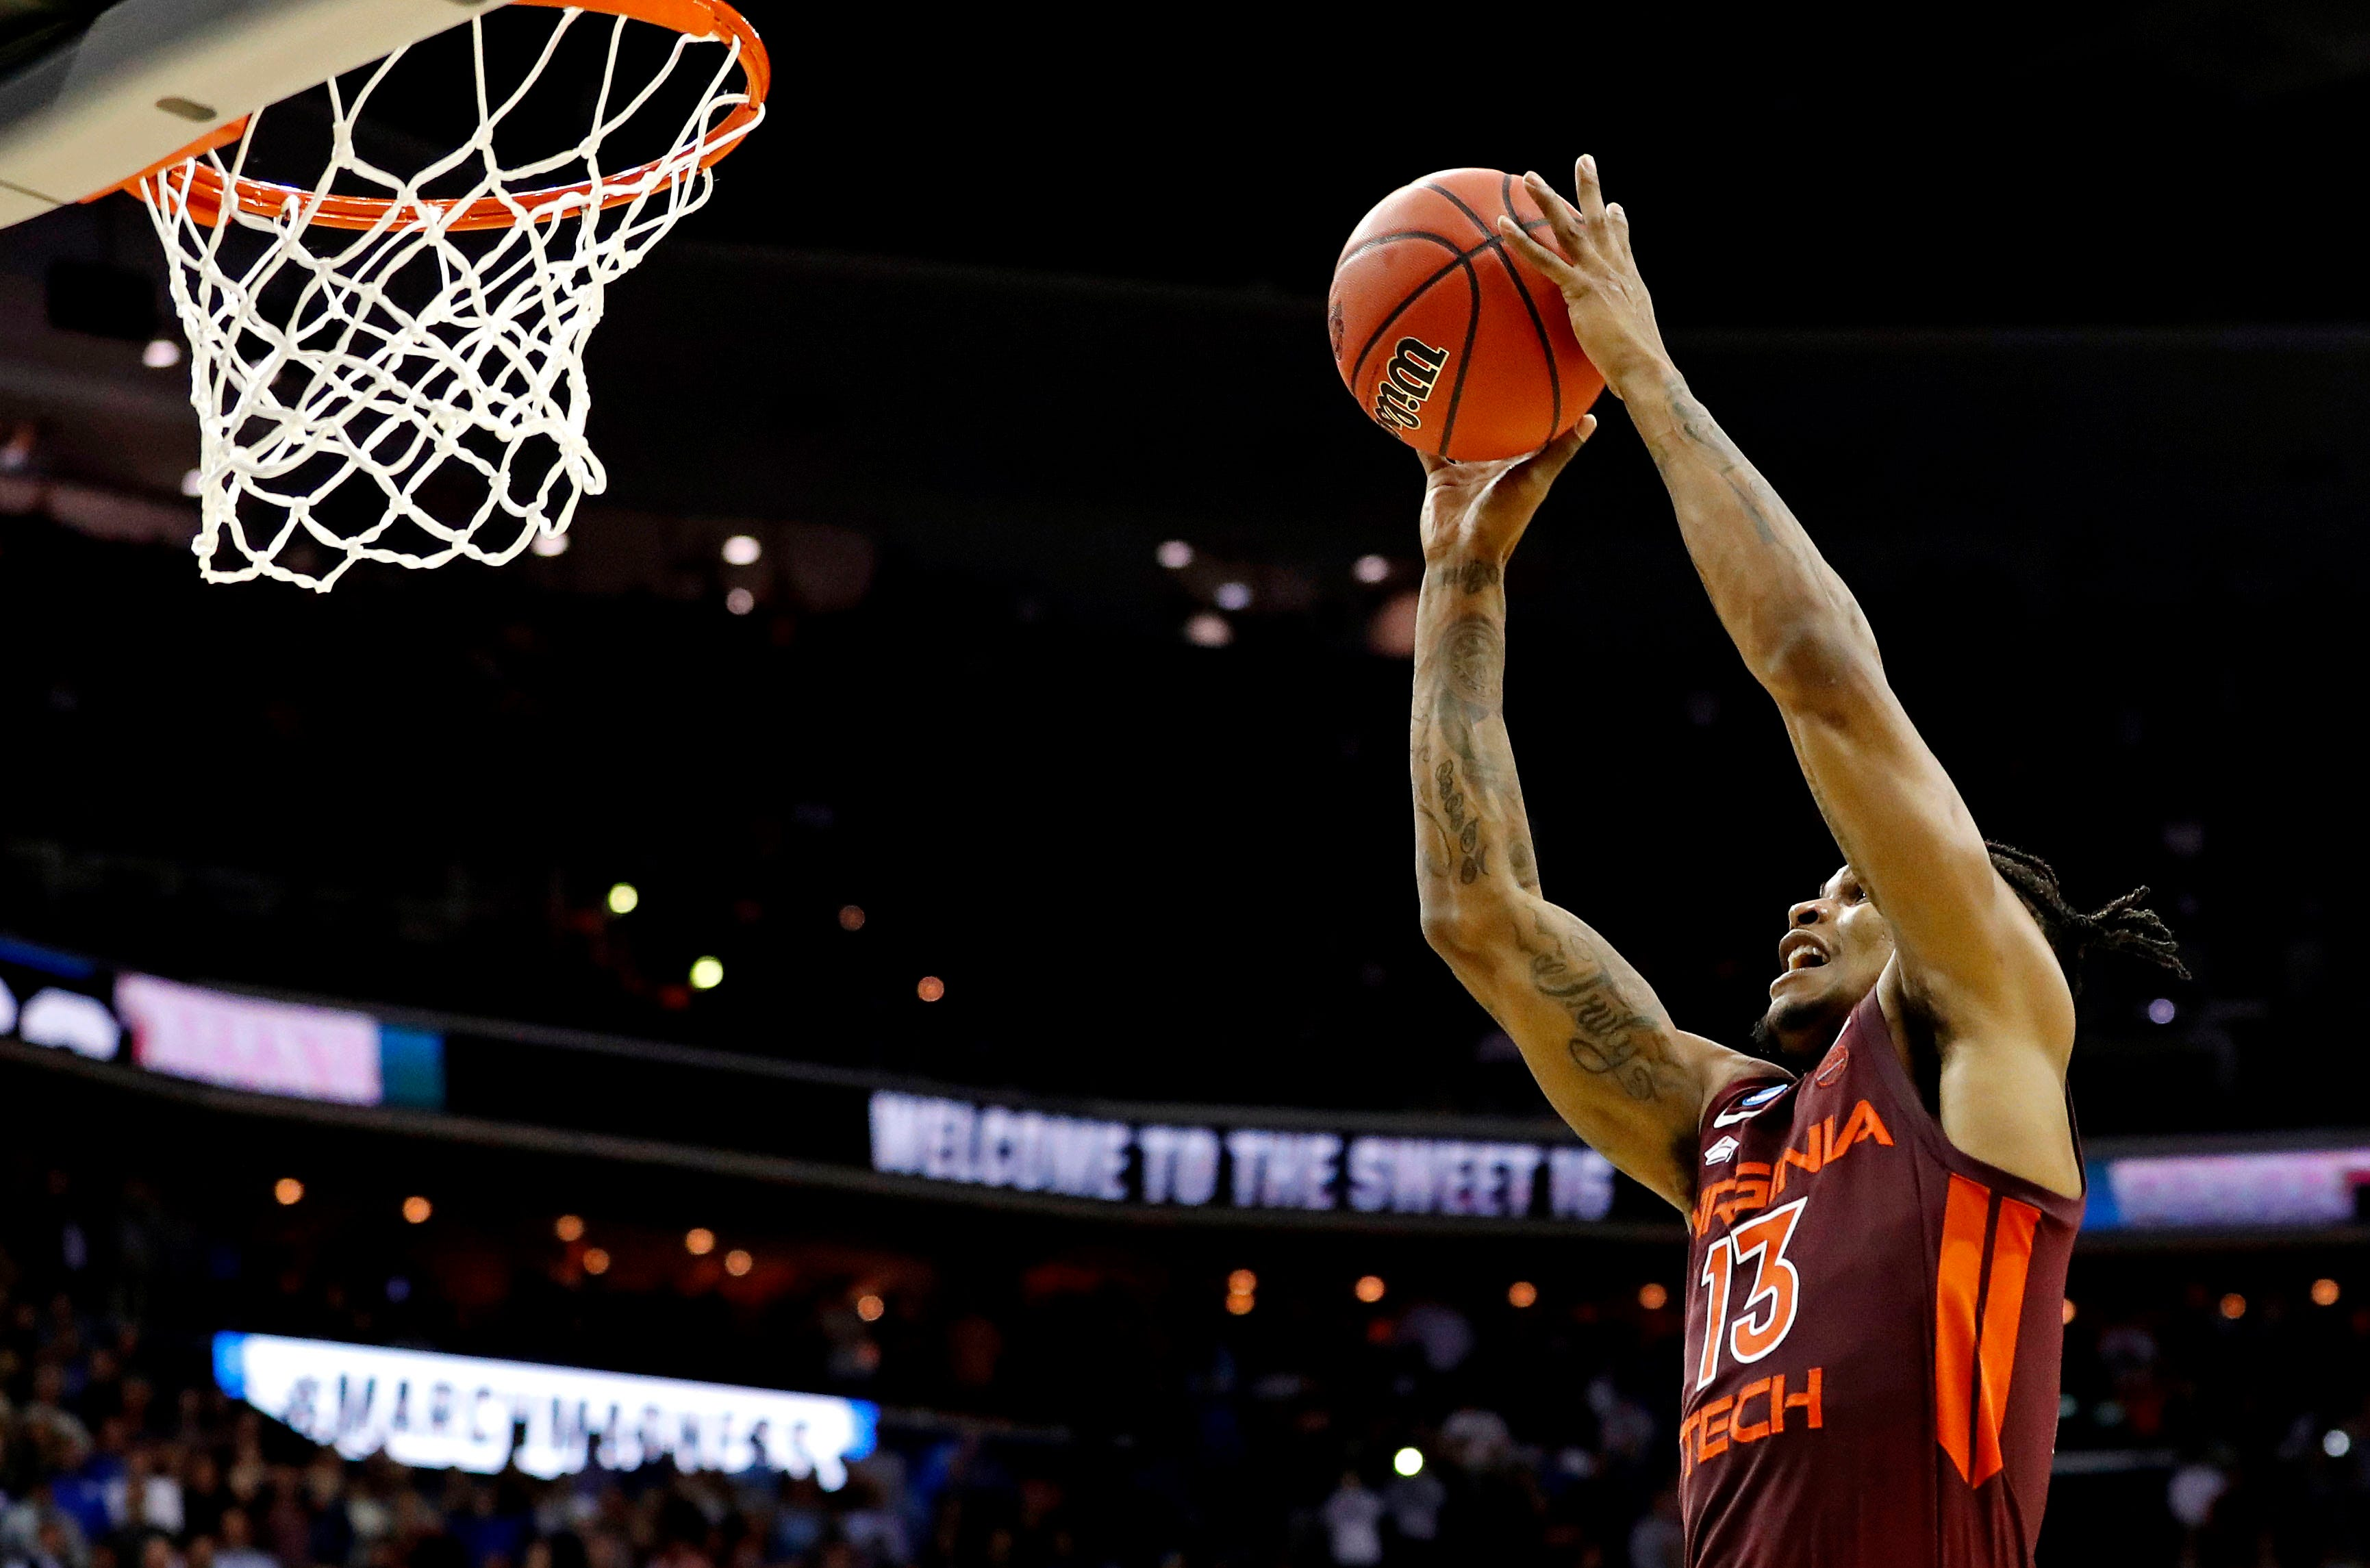 Virginia Tech guard Ahmed Hill misses a last-second shot to tie the game against Duke in the Sweet 16 of the 2019 NCAA tournament.